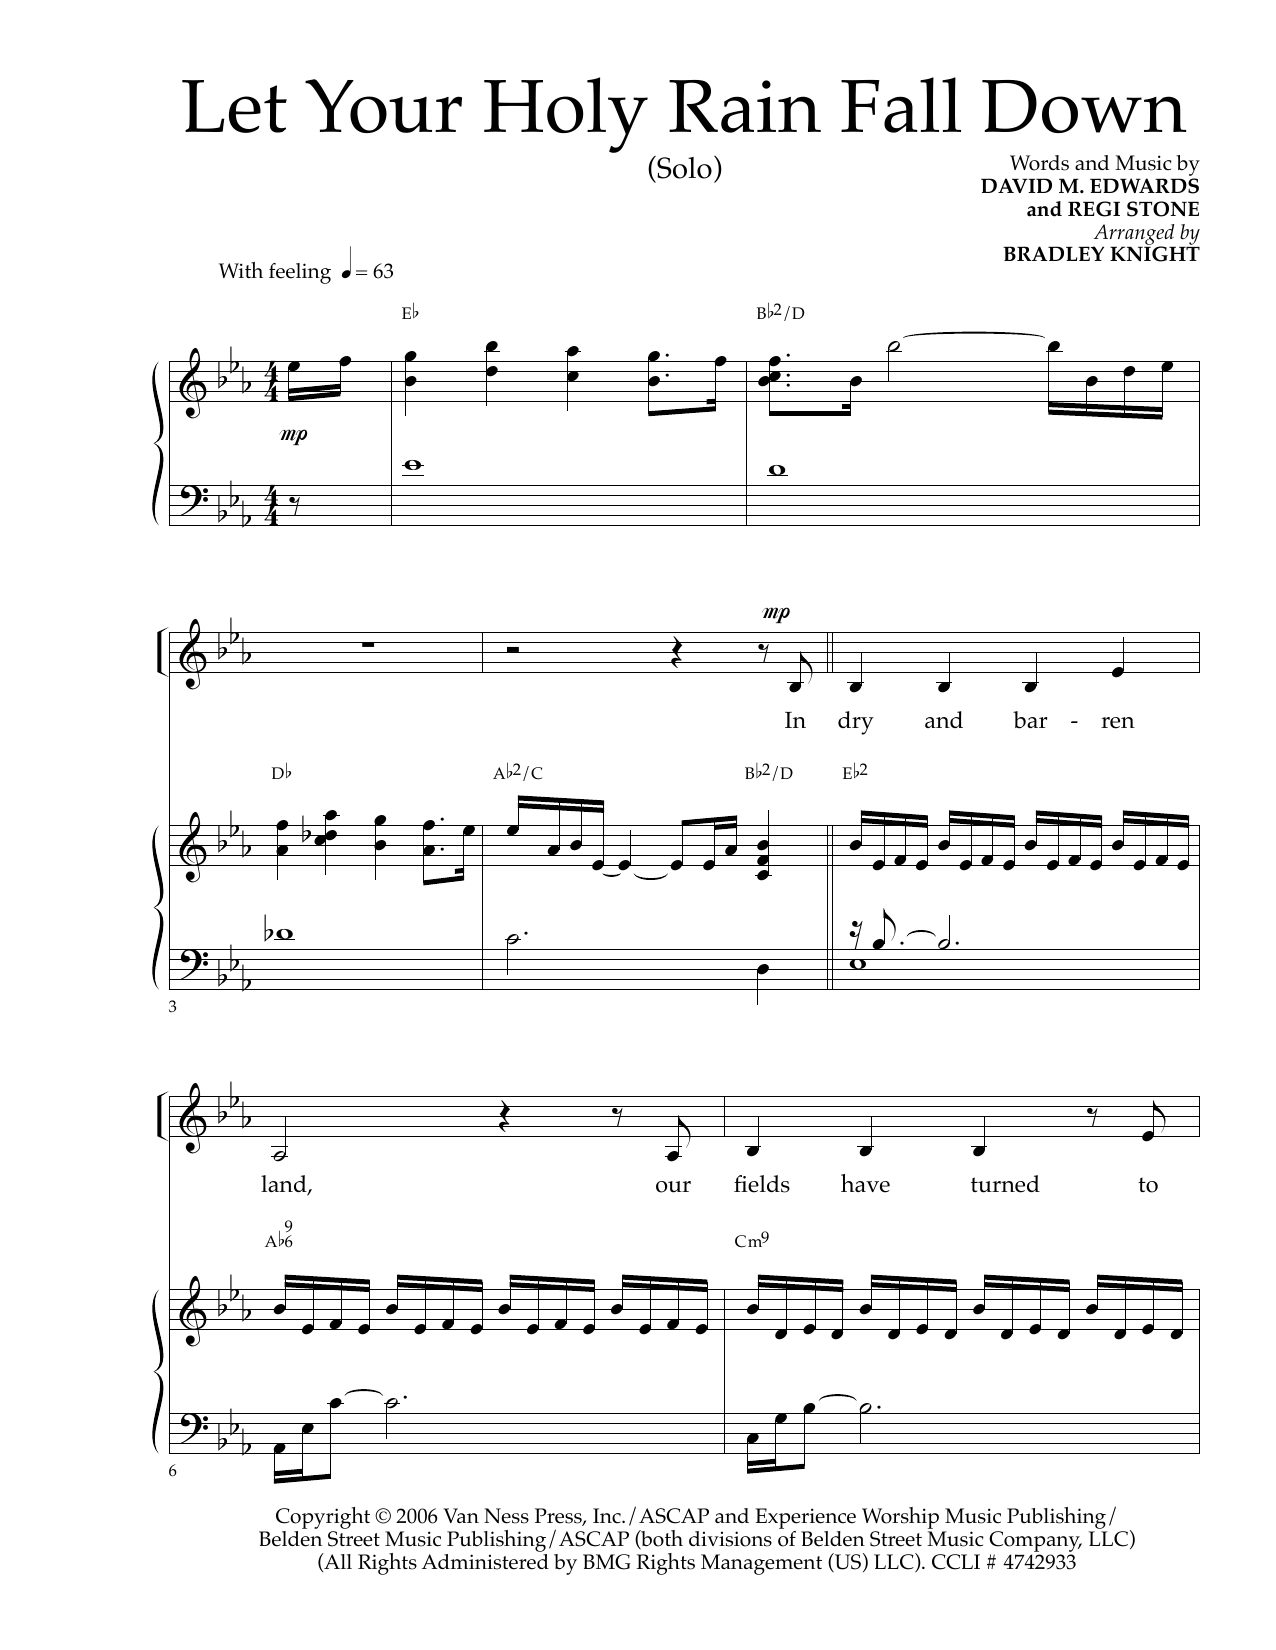 Let Your Holy Rain Fall Down Sheet Music